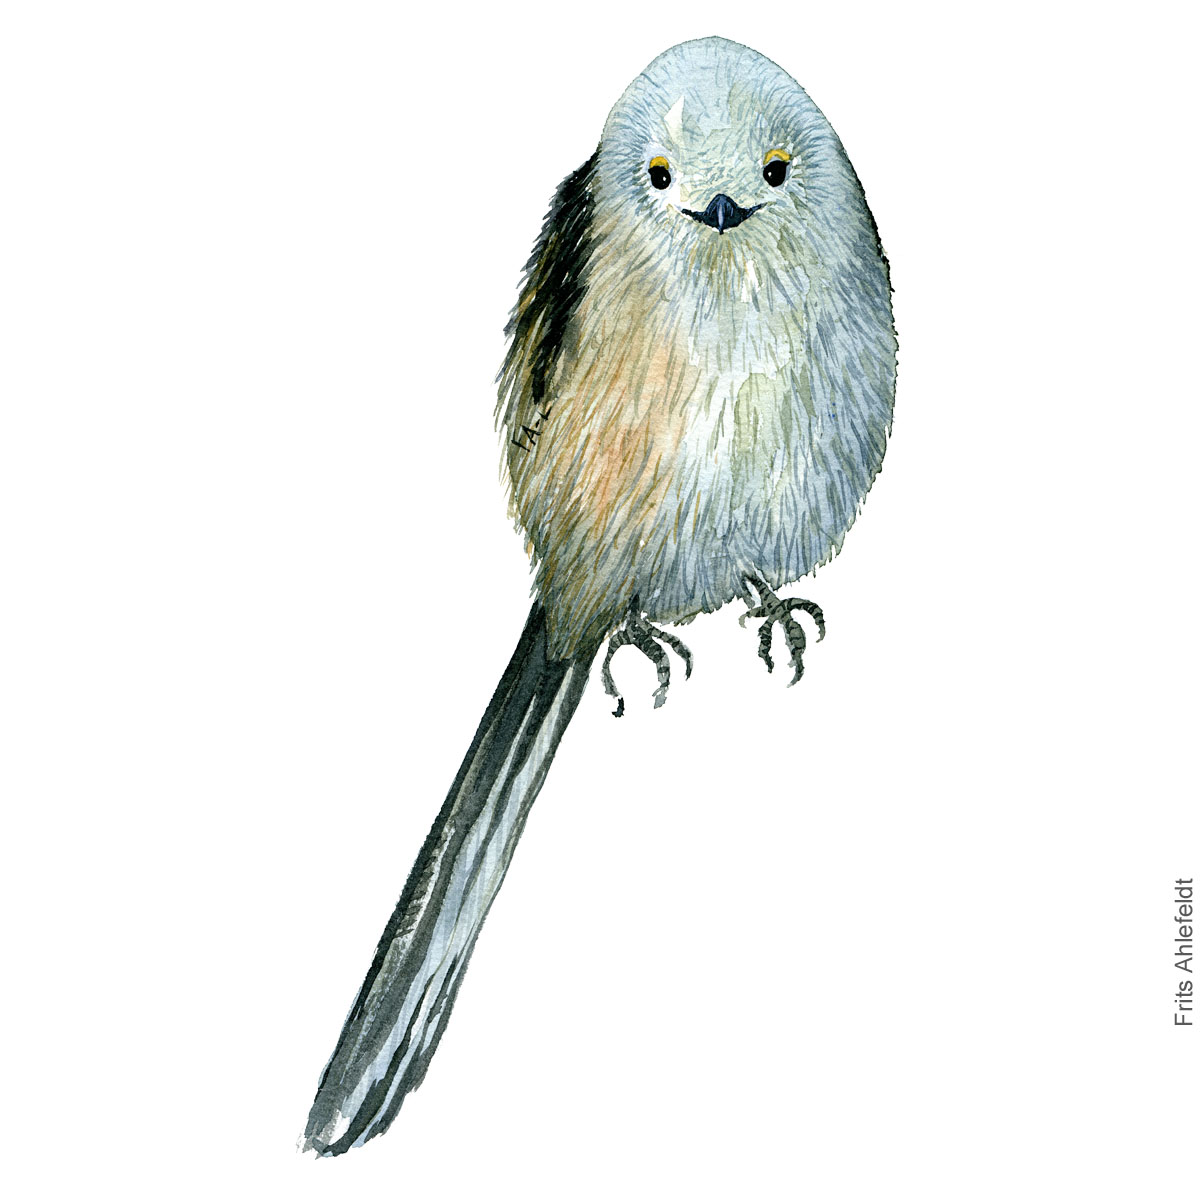 Halemejse - Long tailed tit - Bird watercolor painting. Artwork by Frits Ahlefeldt. Fugle akvarel